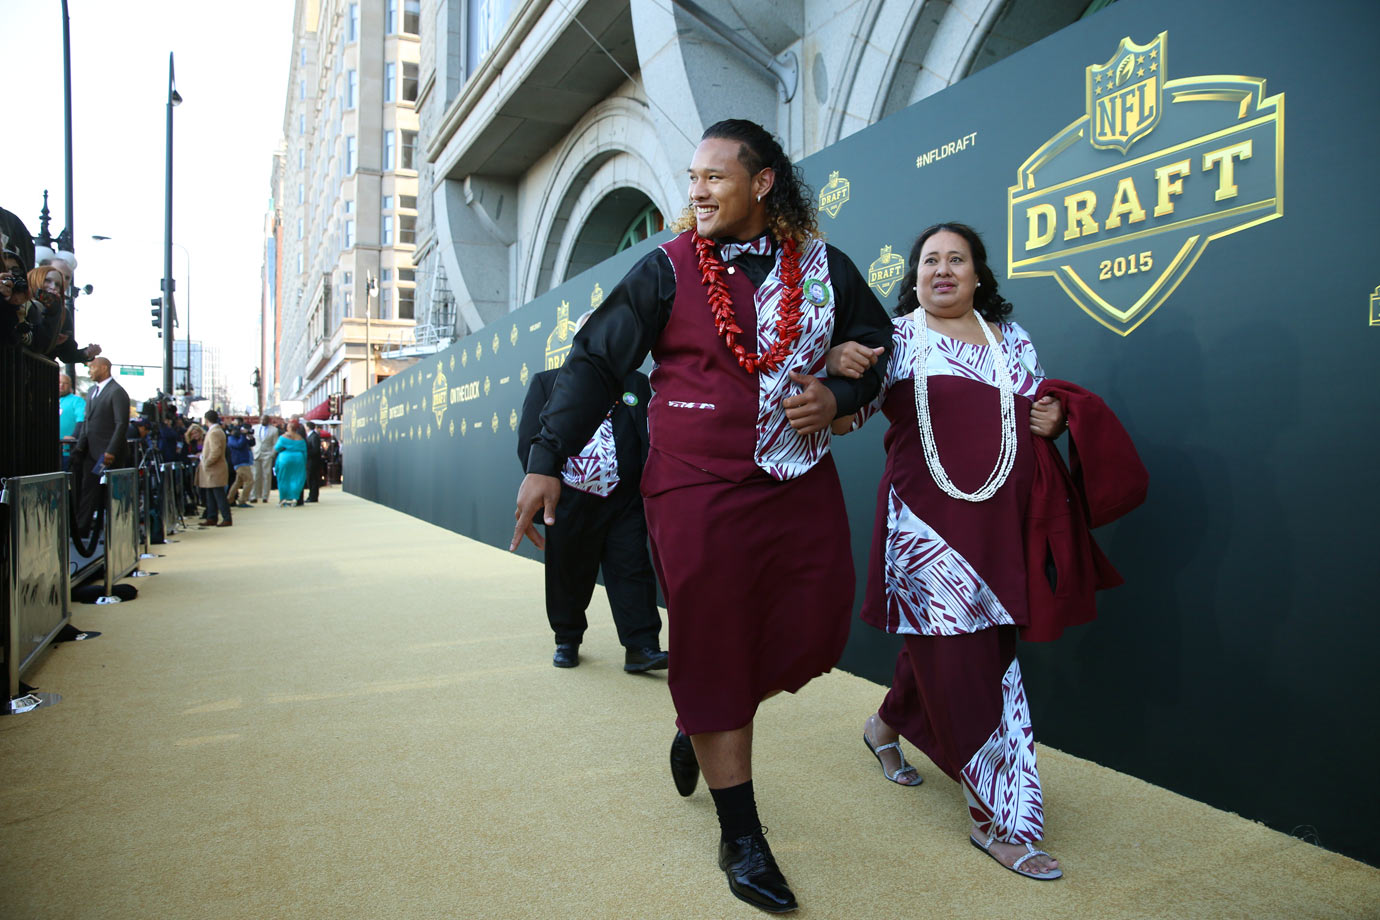 University of Washington nosetackle Danny Shelton takes a walk on the draft's gold carpet with his mother in their traditional Samoan gear. Shelton was selected by the Cleveland Browns with the 12th pick.